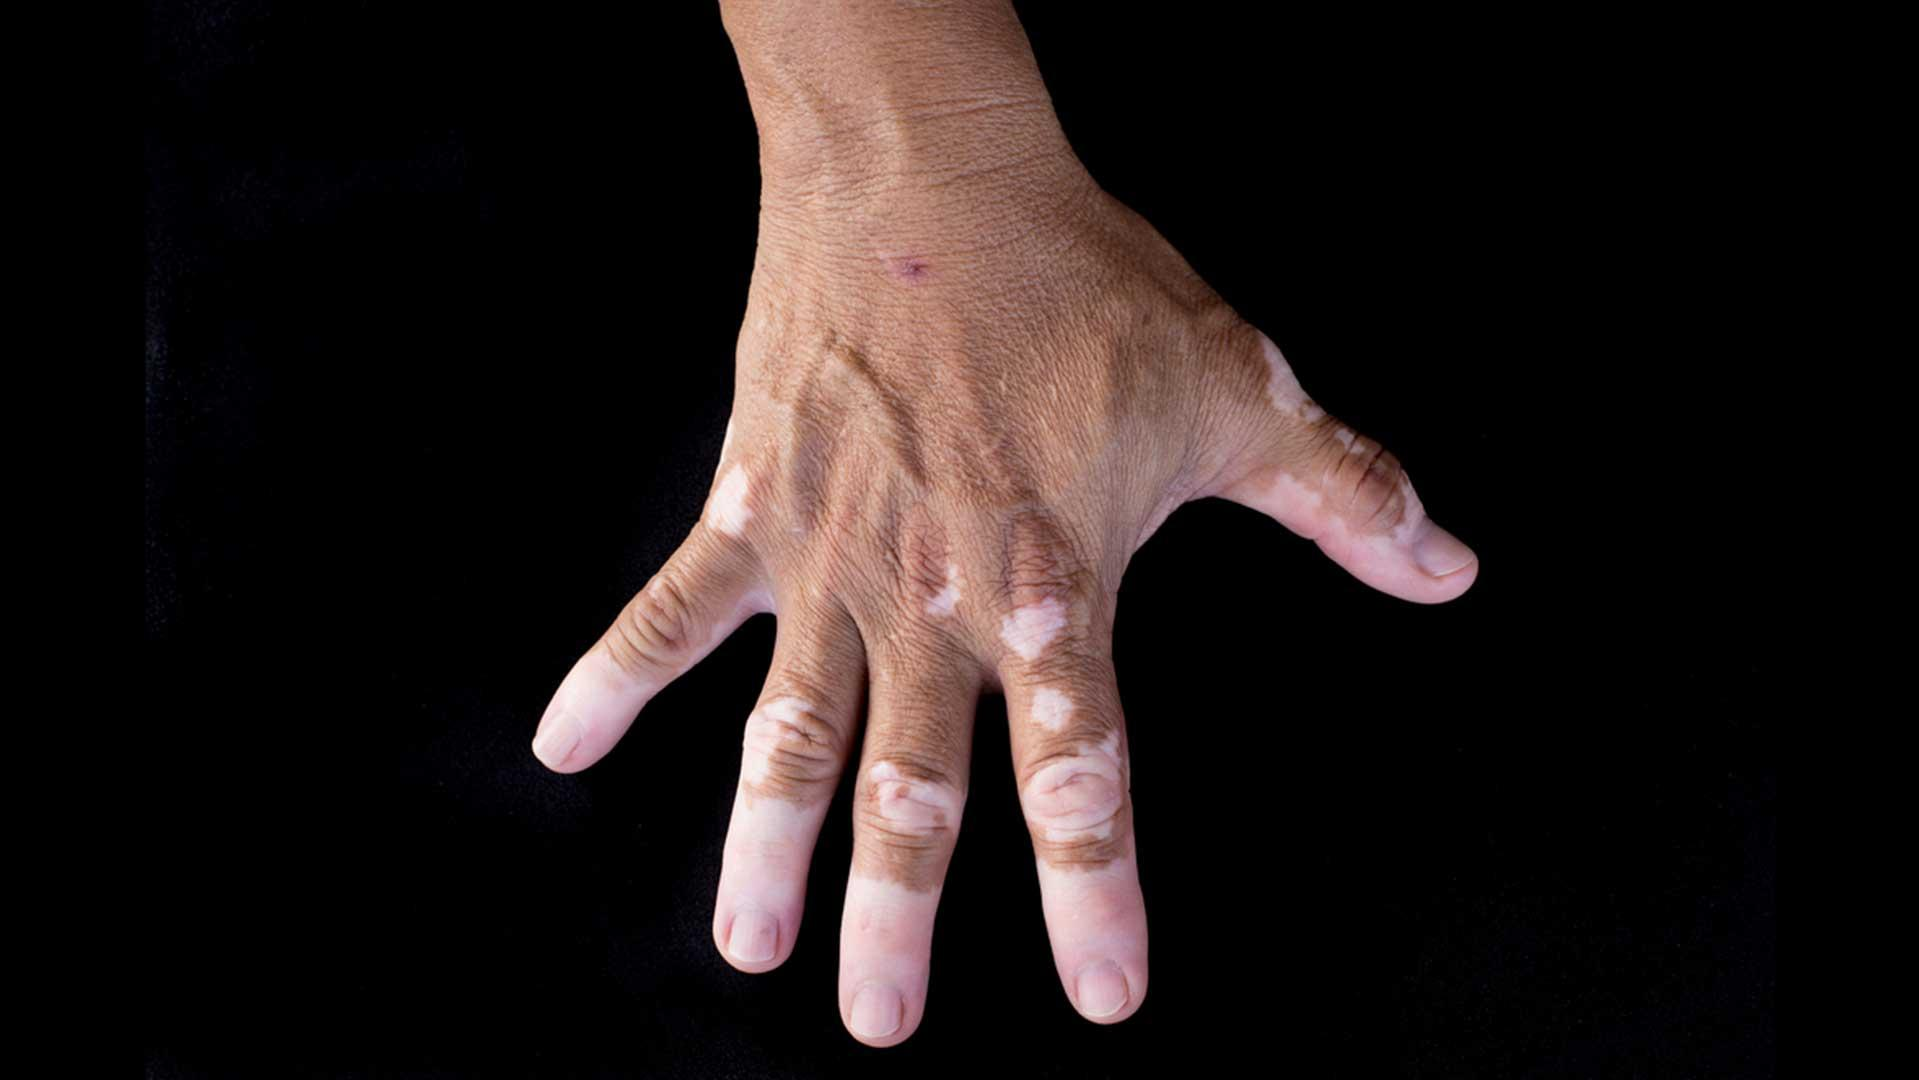 What are the symptoms of vitiligo?